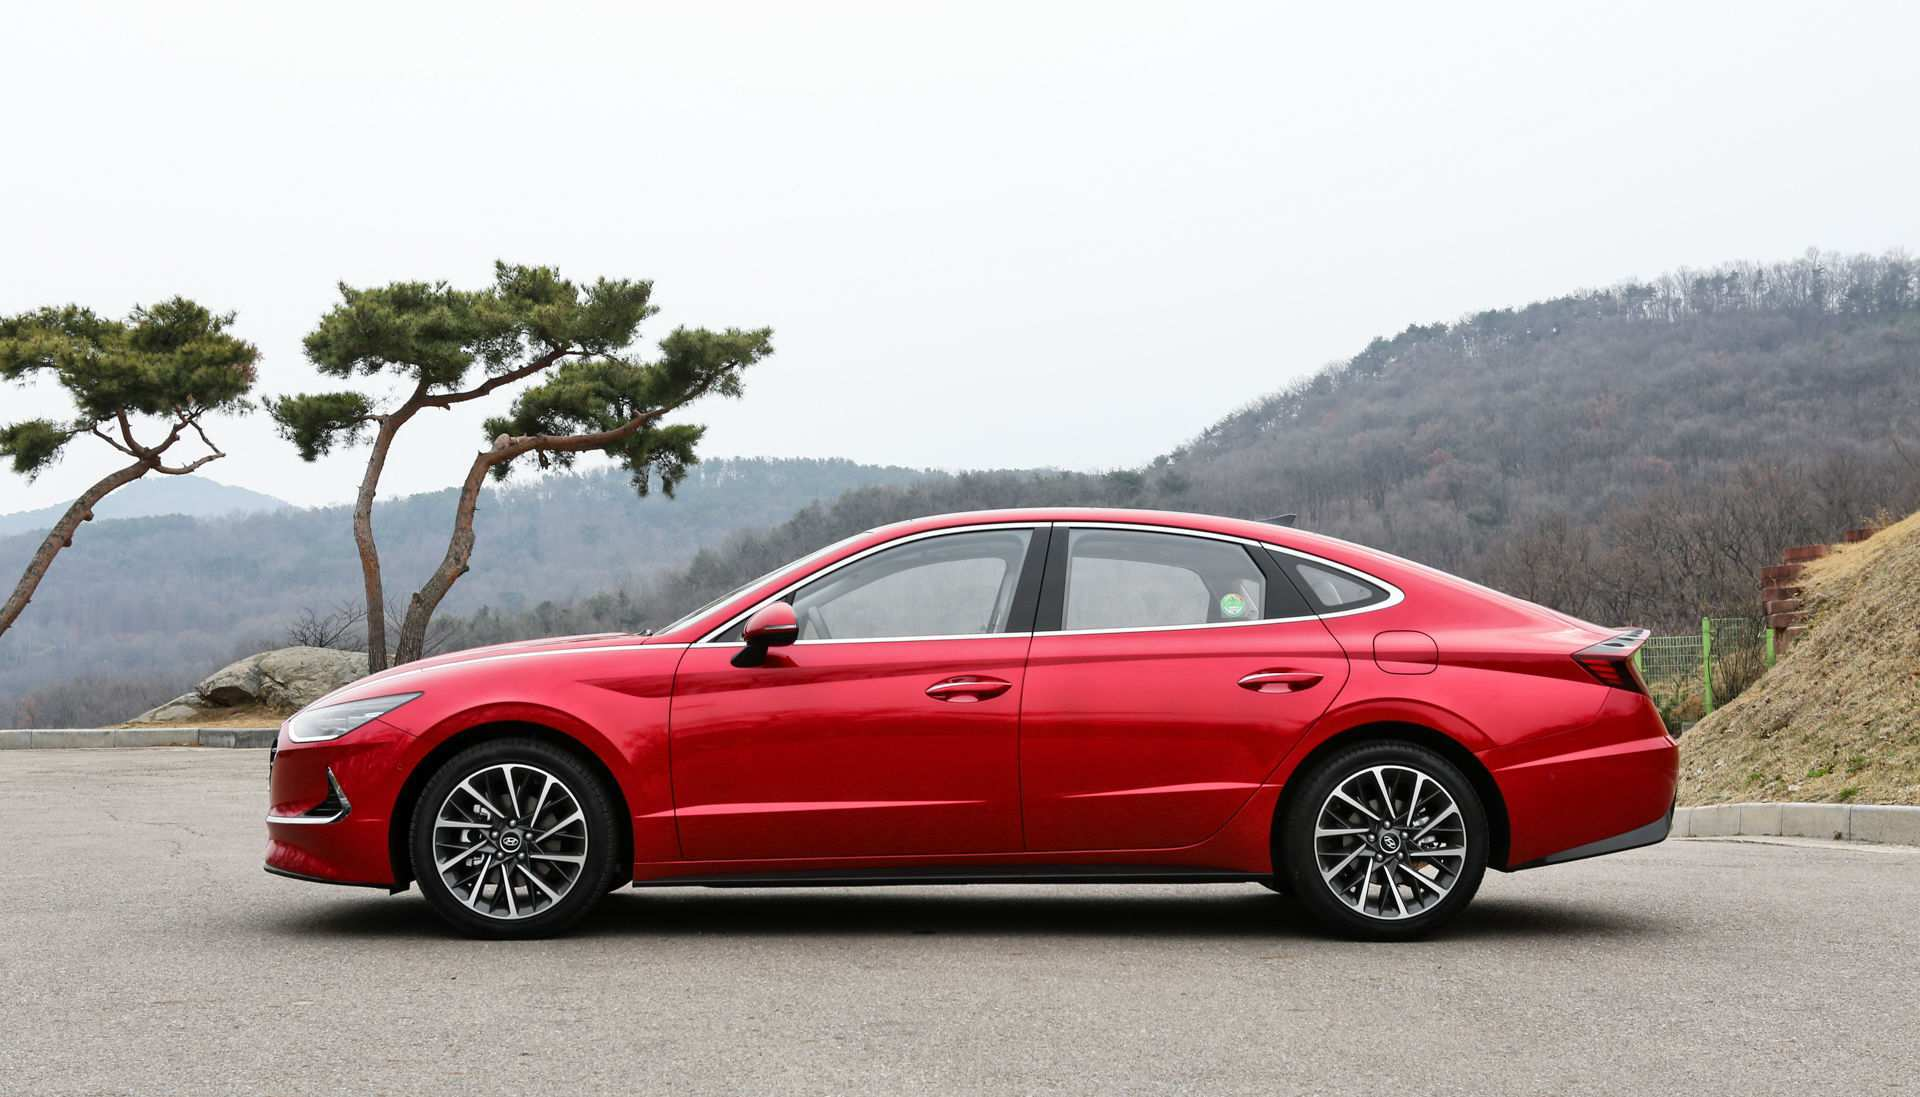 2020 Hyundai Sonata Review.71 Gallery Of Pictures Of The 2020 Hyundai Sonata Pictures